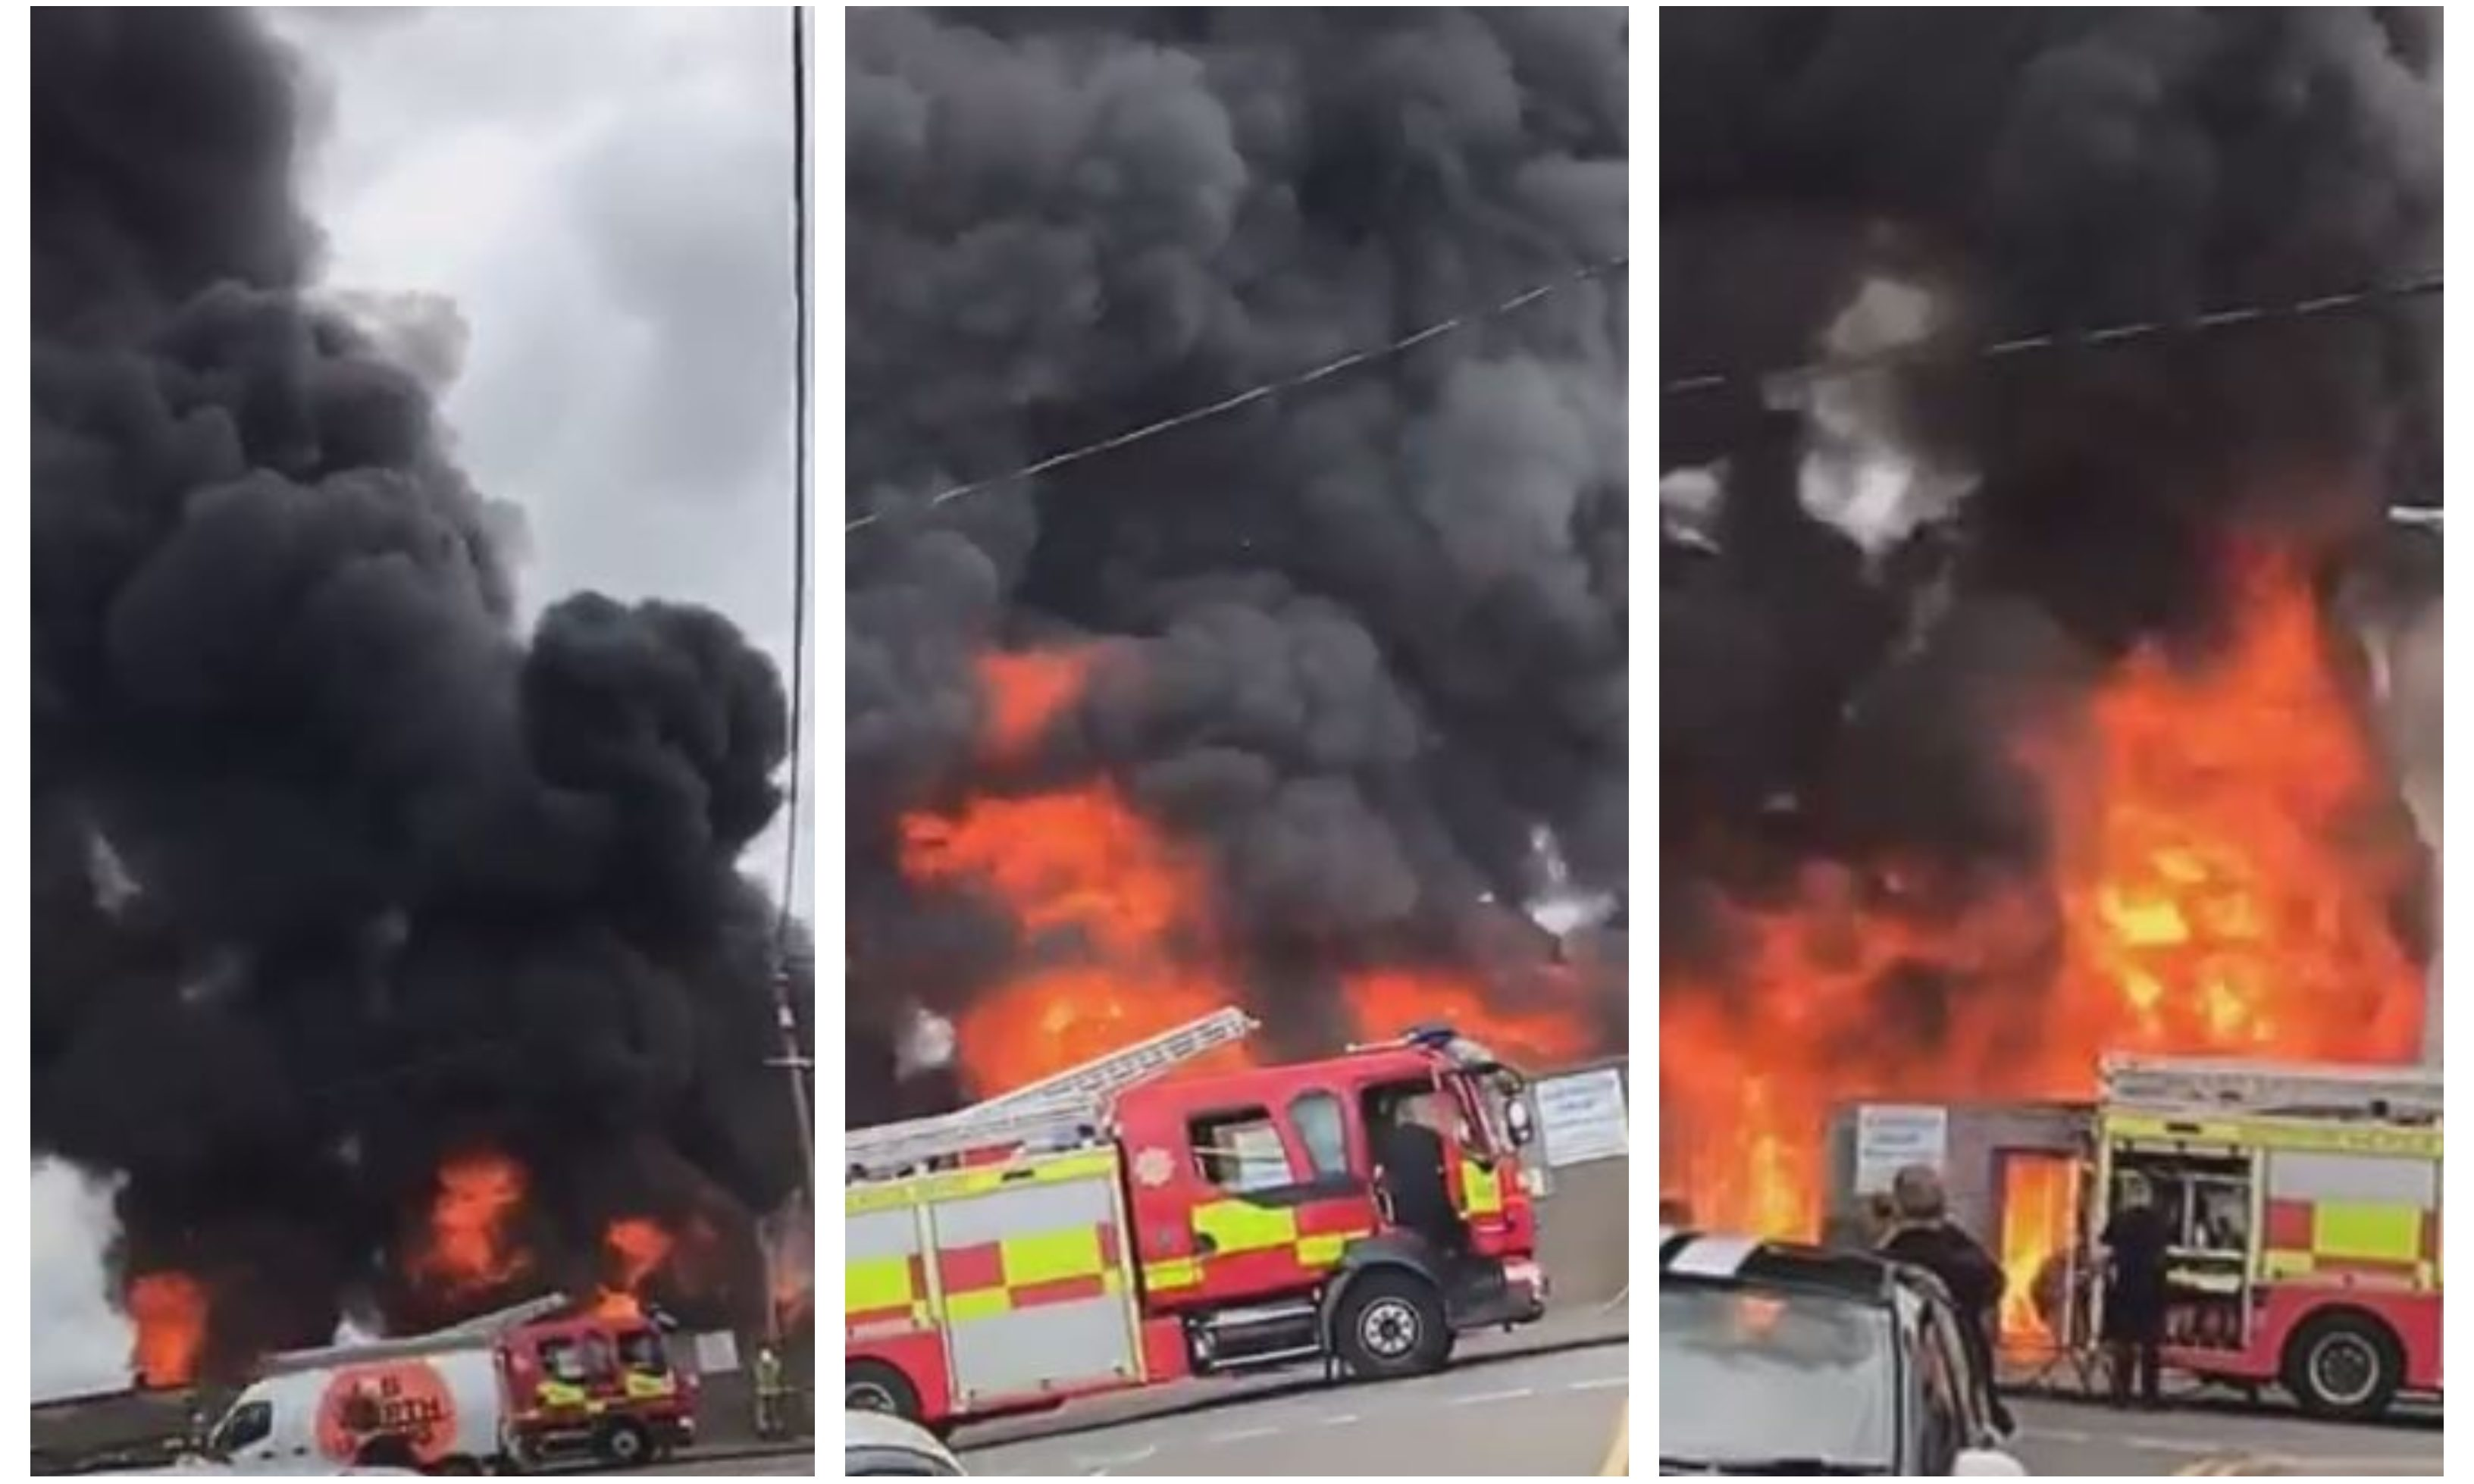 Footage of the Bo'ness blaze, posted to the Bo'ness Natters Facebook page.